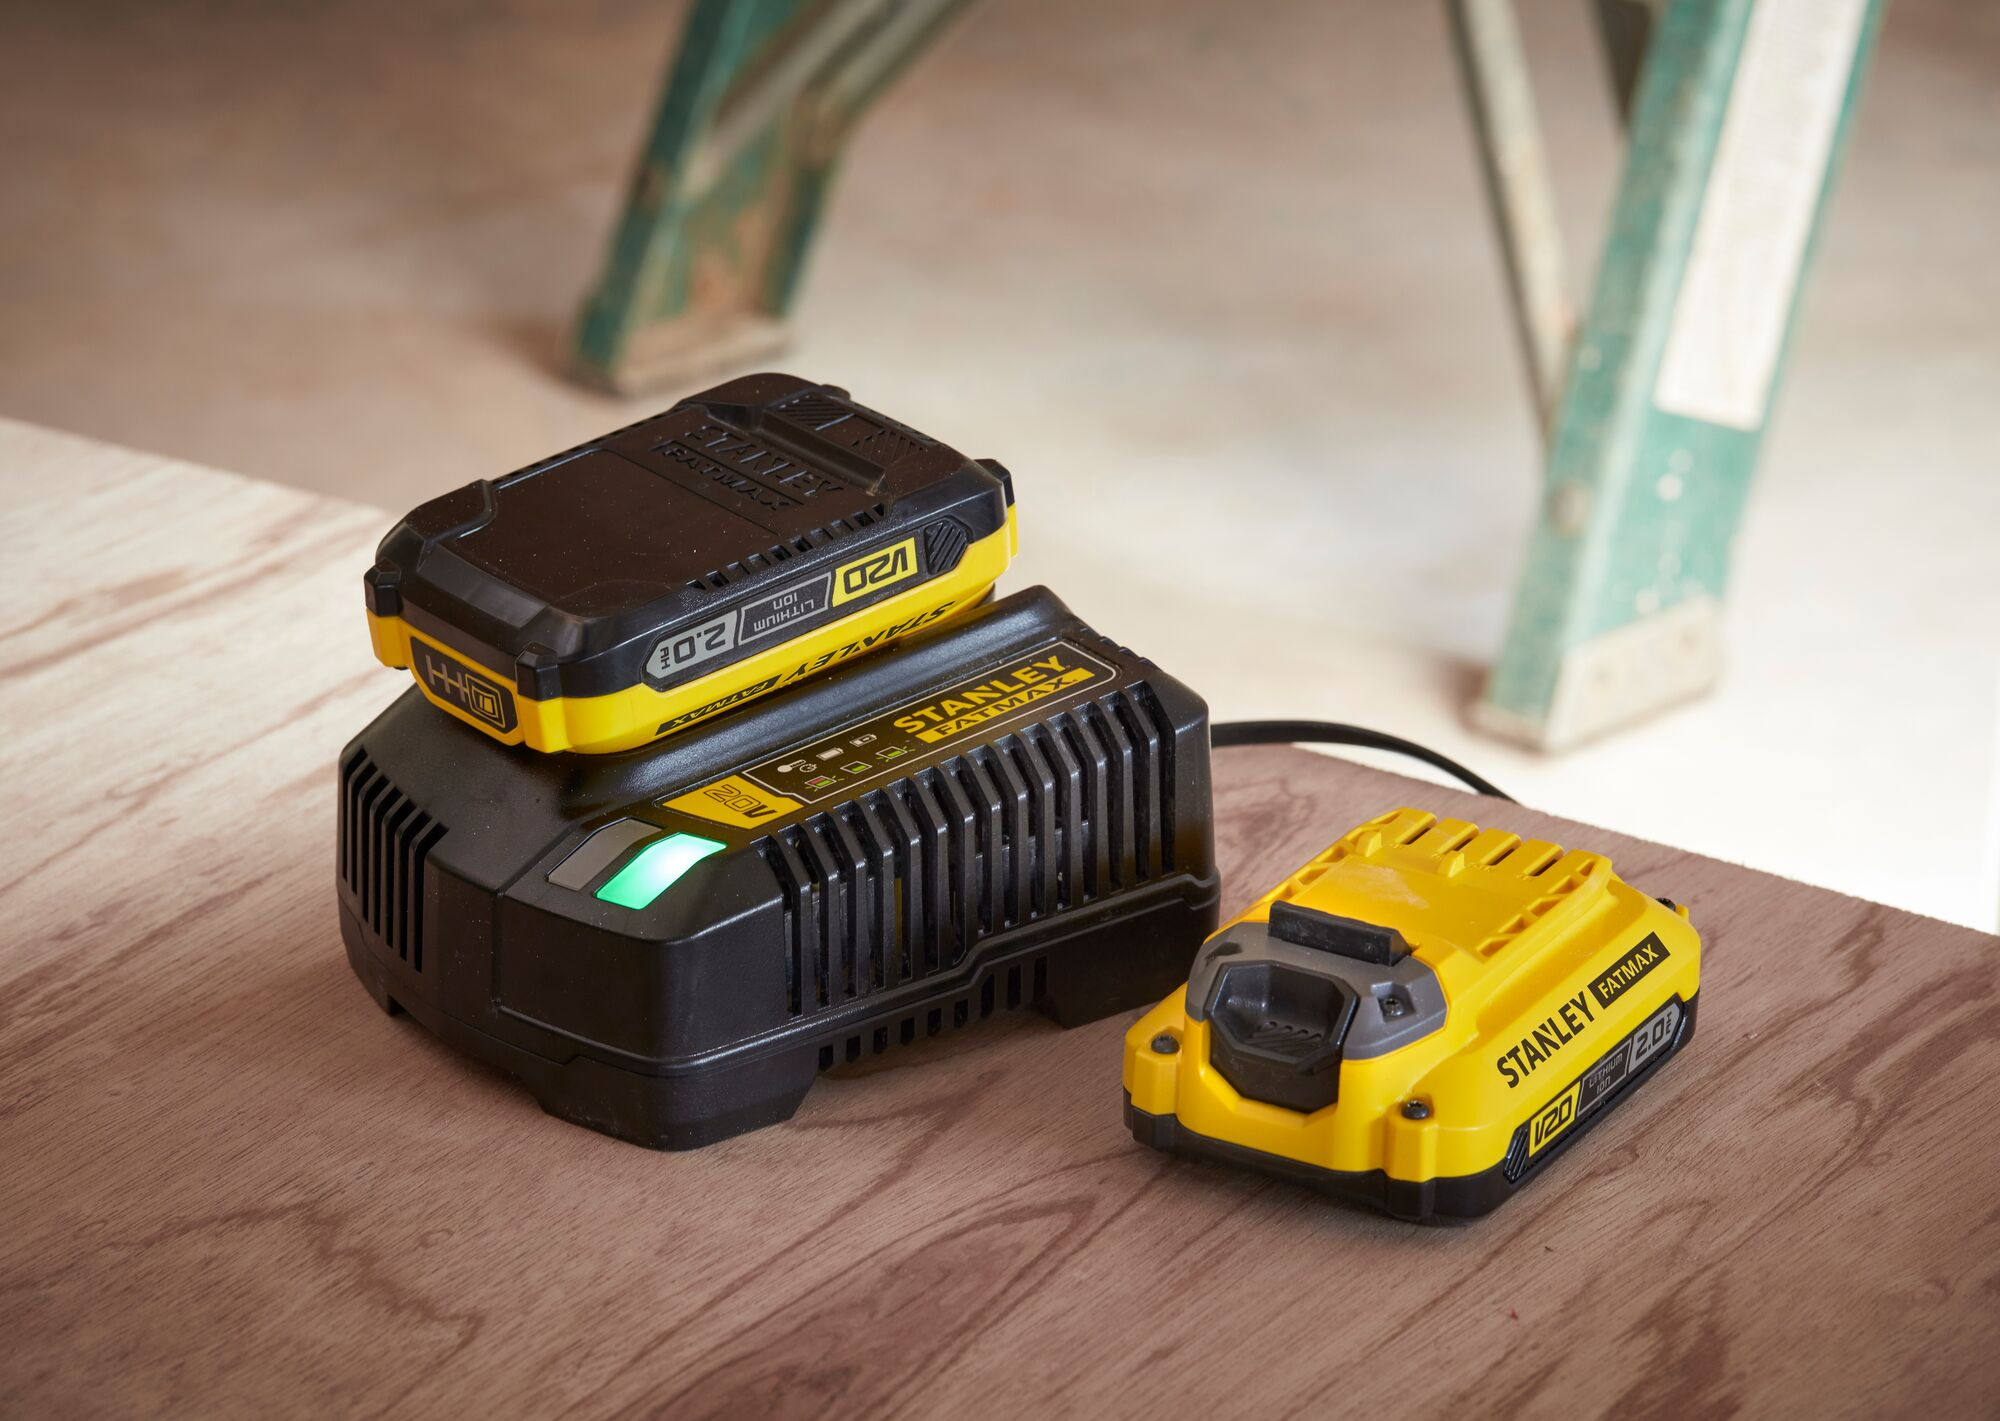 STANLEY FATMAX 20V battery charger with two STANLEY batteries 20V 2.0AH on a wood surface